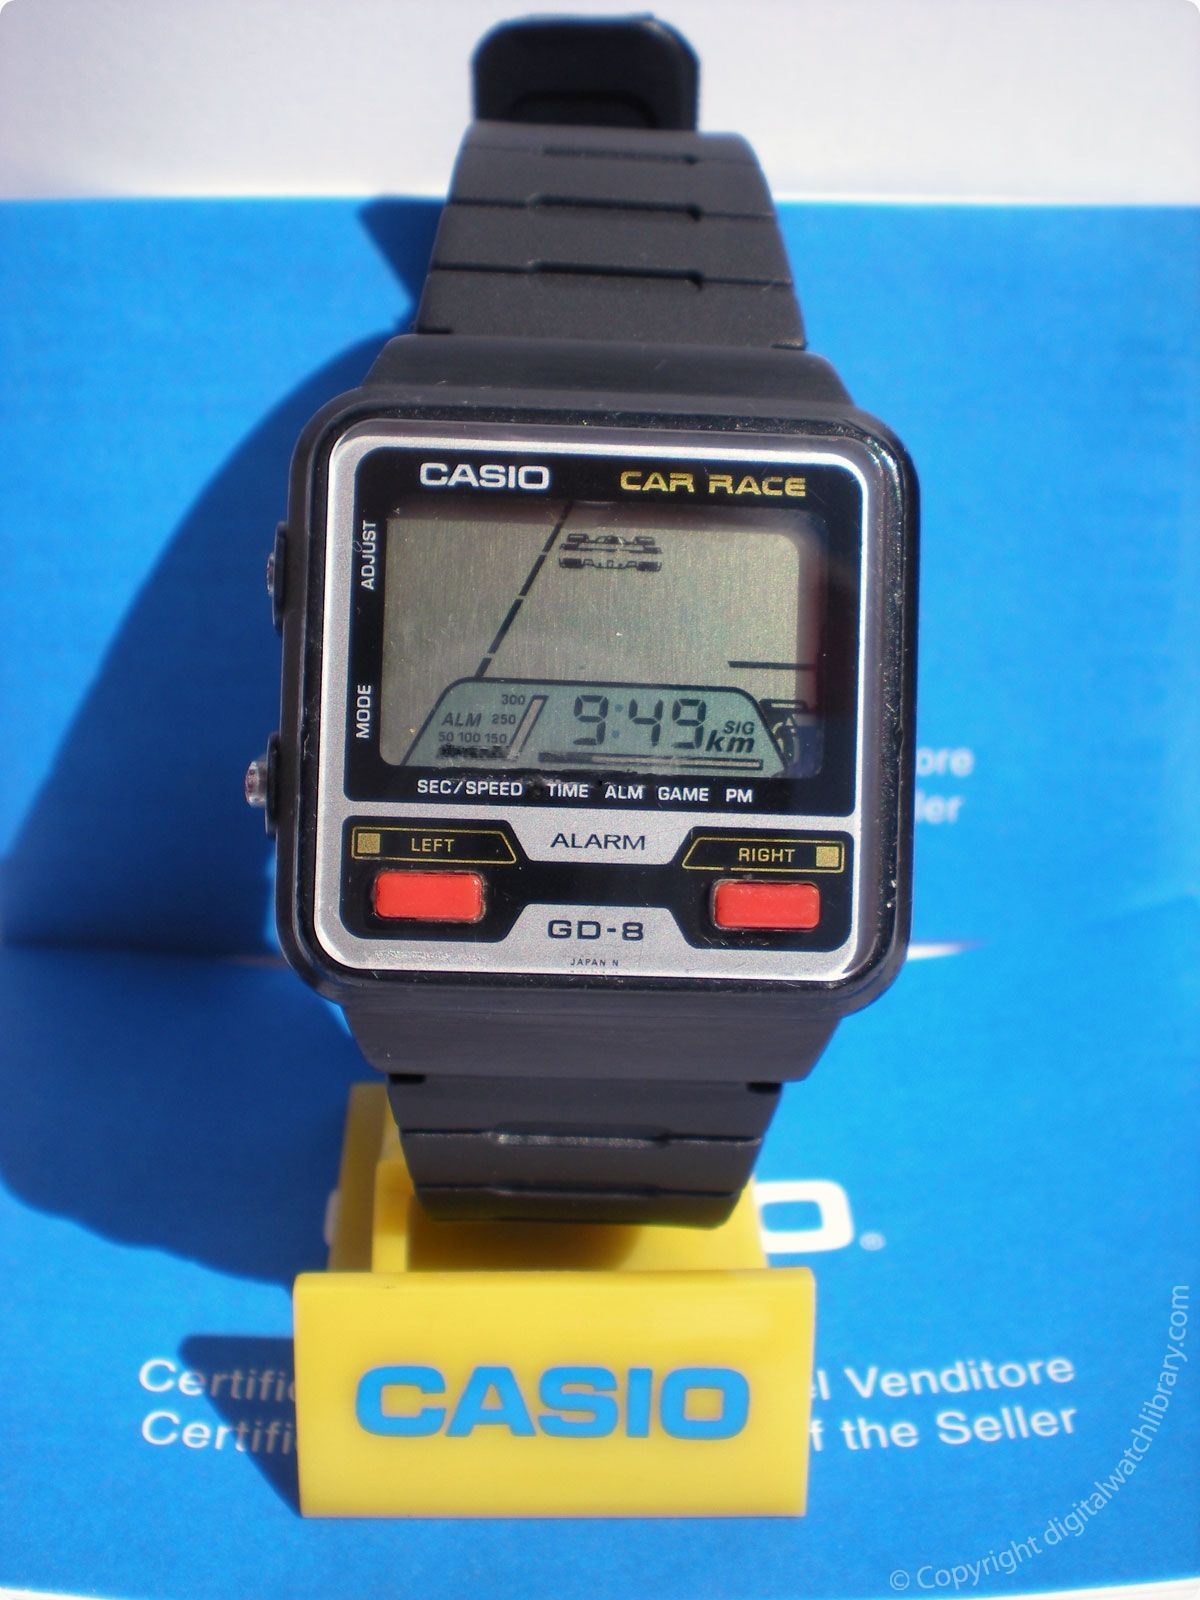 CASIO - GD-8 - Car Race  e1fb160fd8